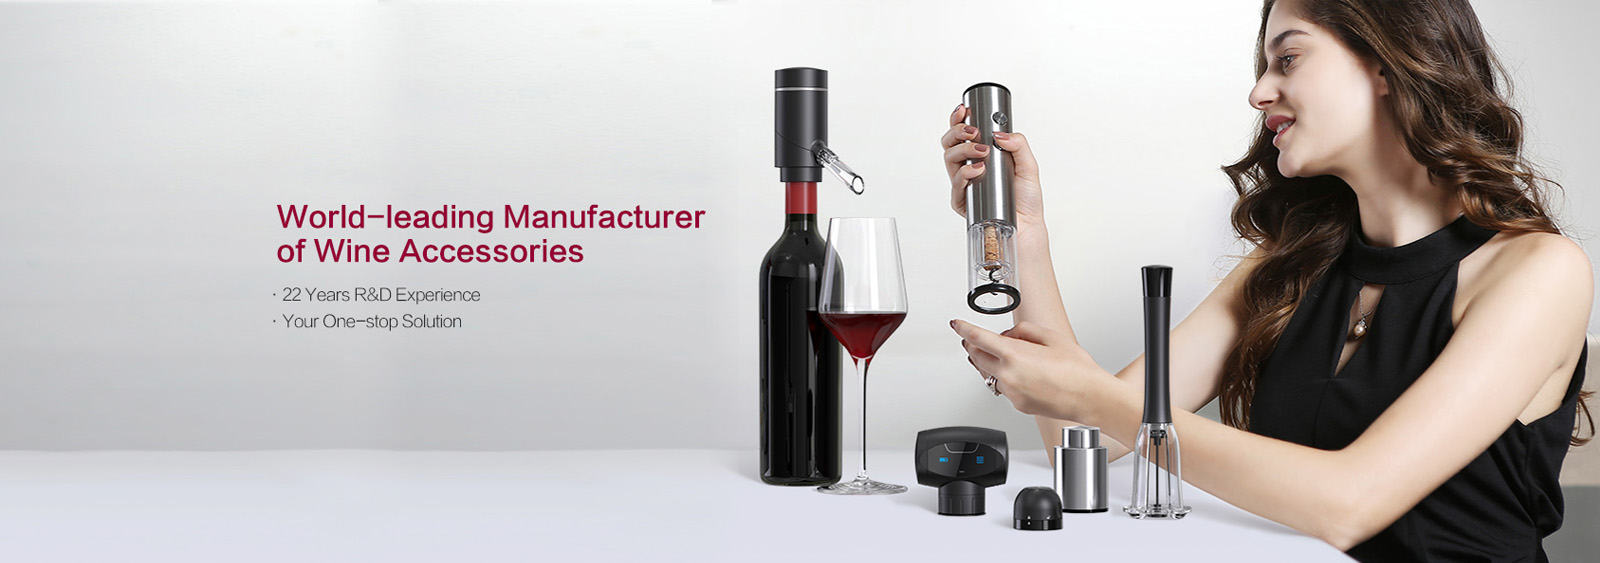 KLT - World-leading Manufacturer of Electric Wine Opener and Wine Accessories